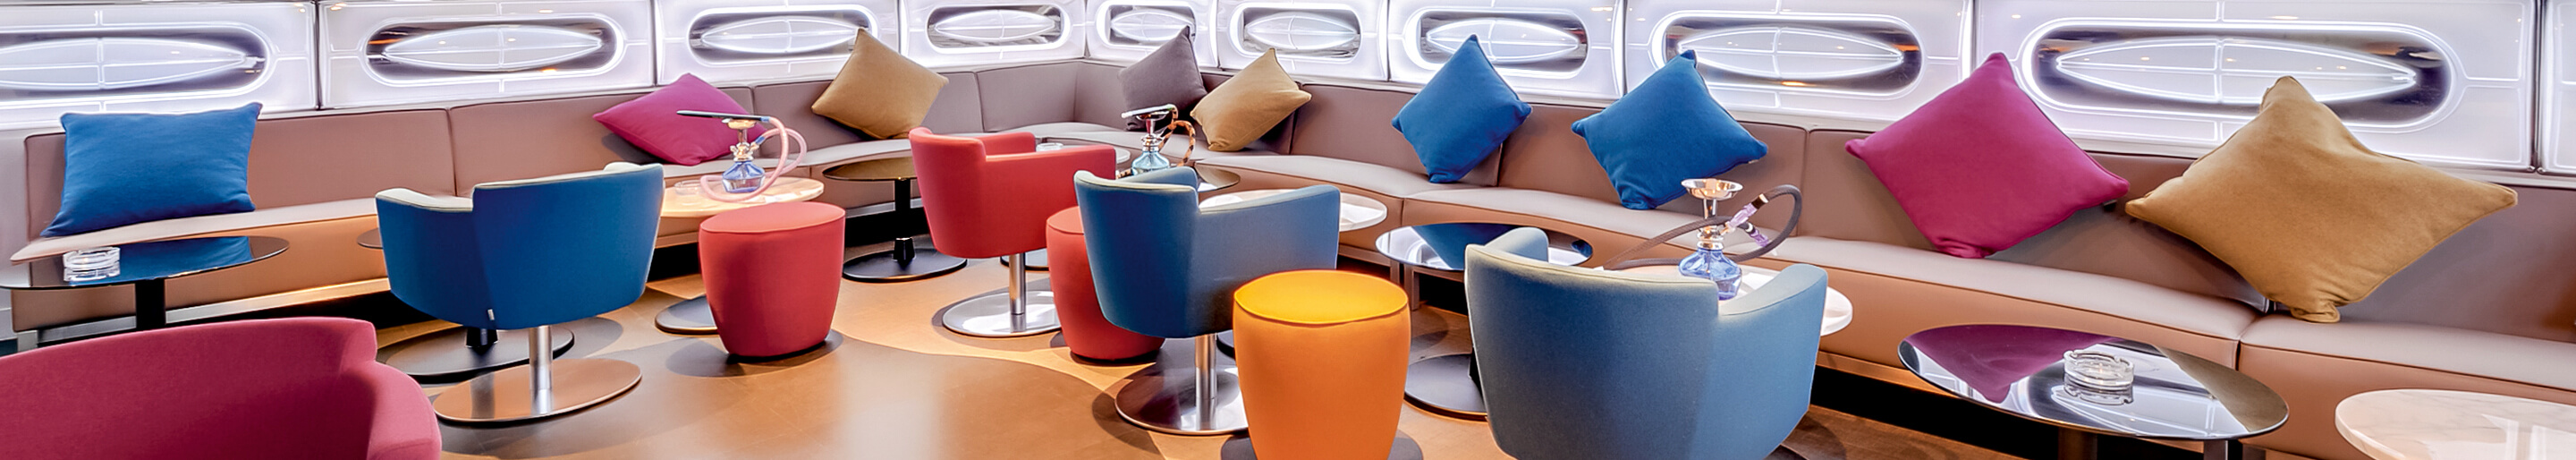 Indoor Club furniture for your restaurant or hotel